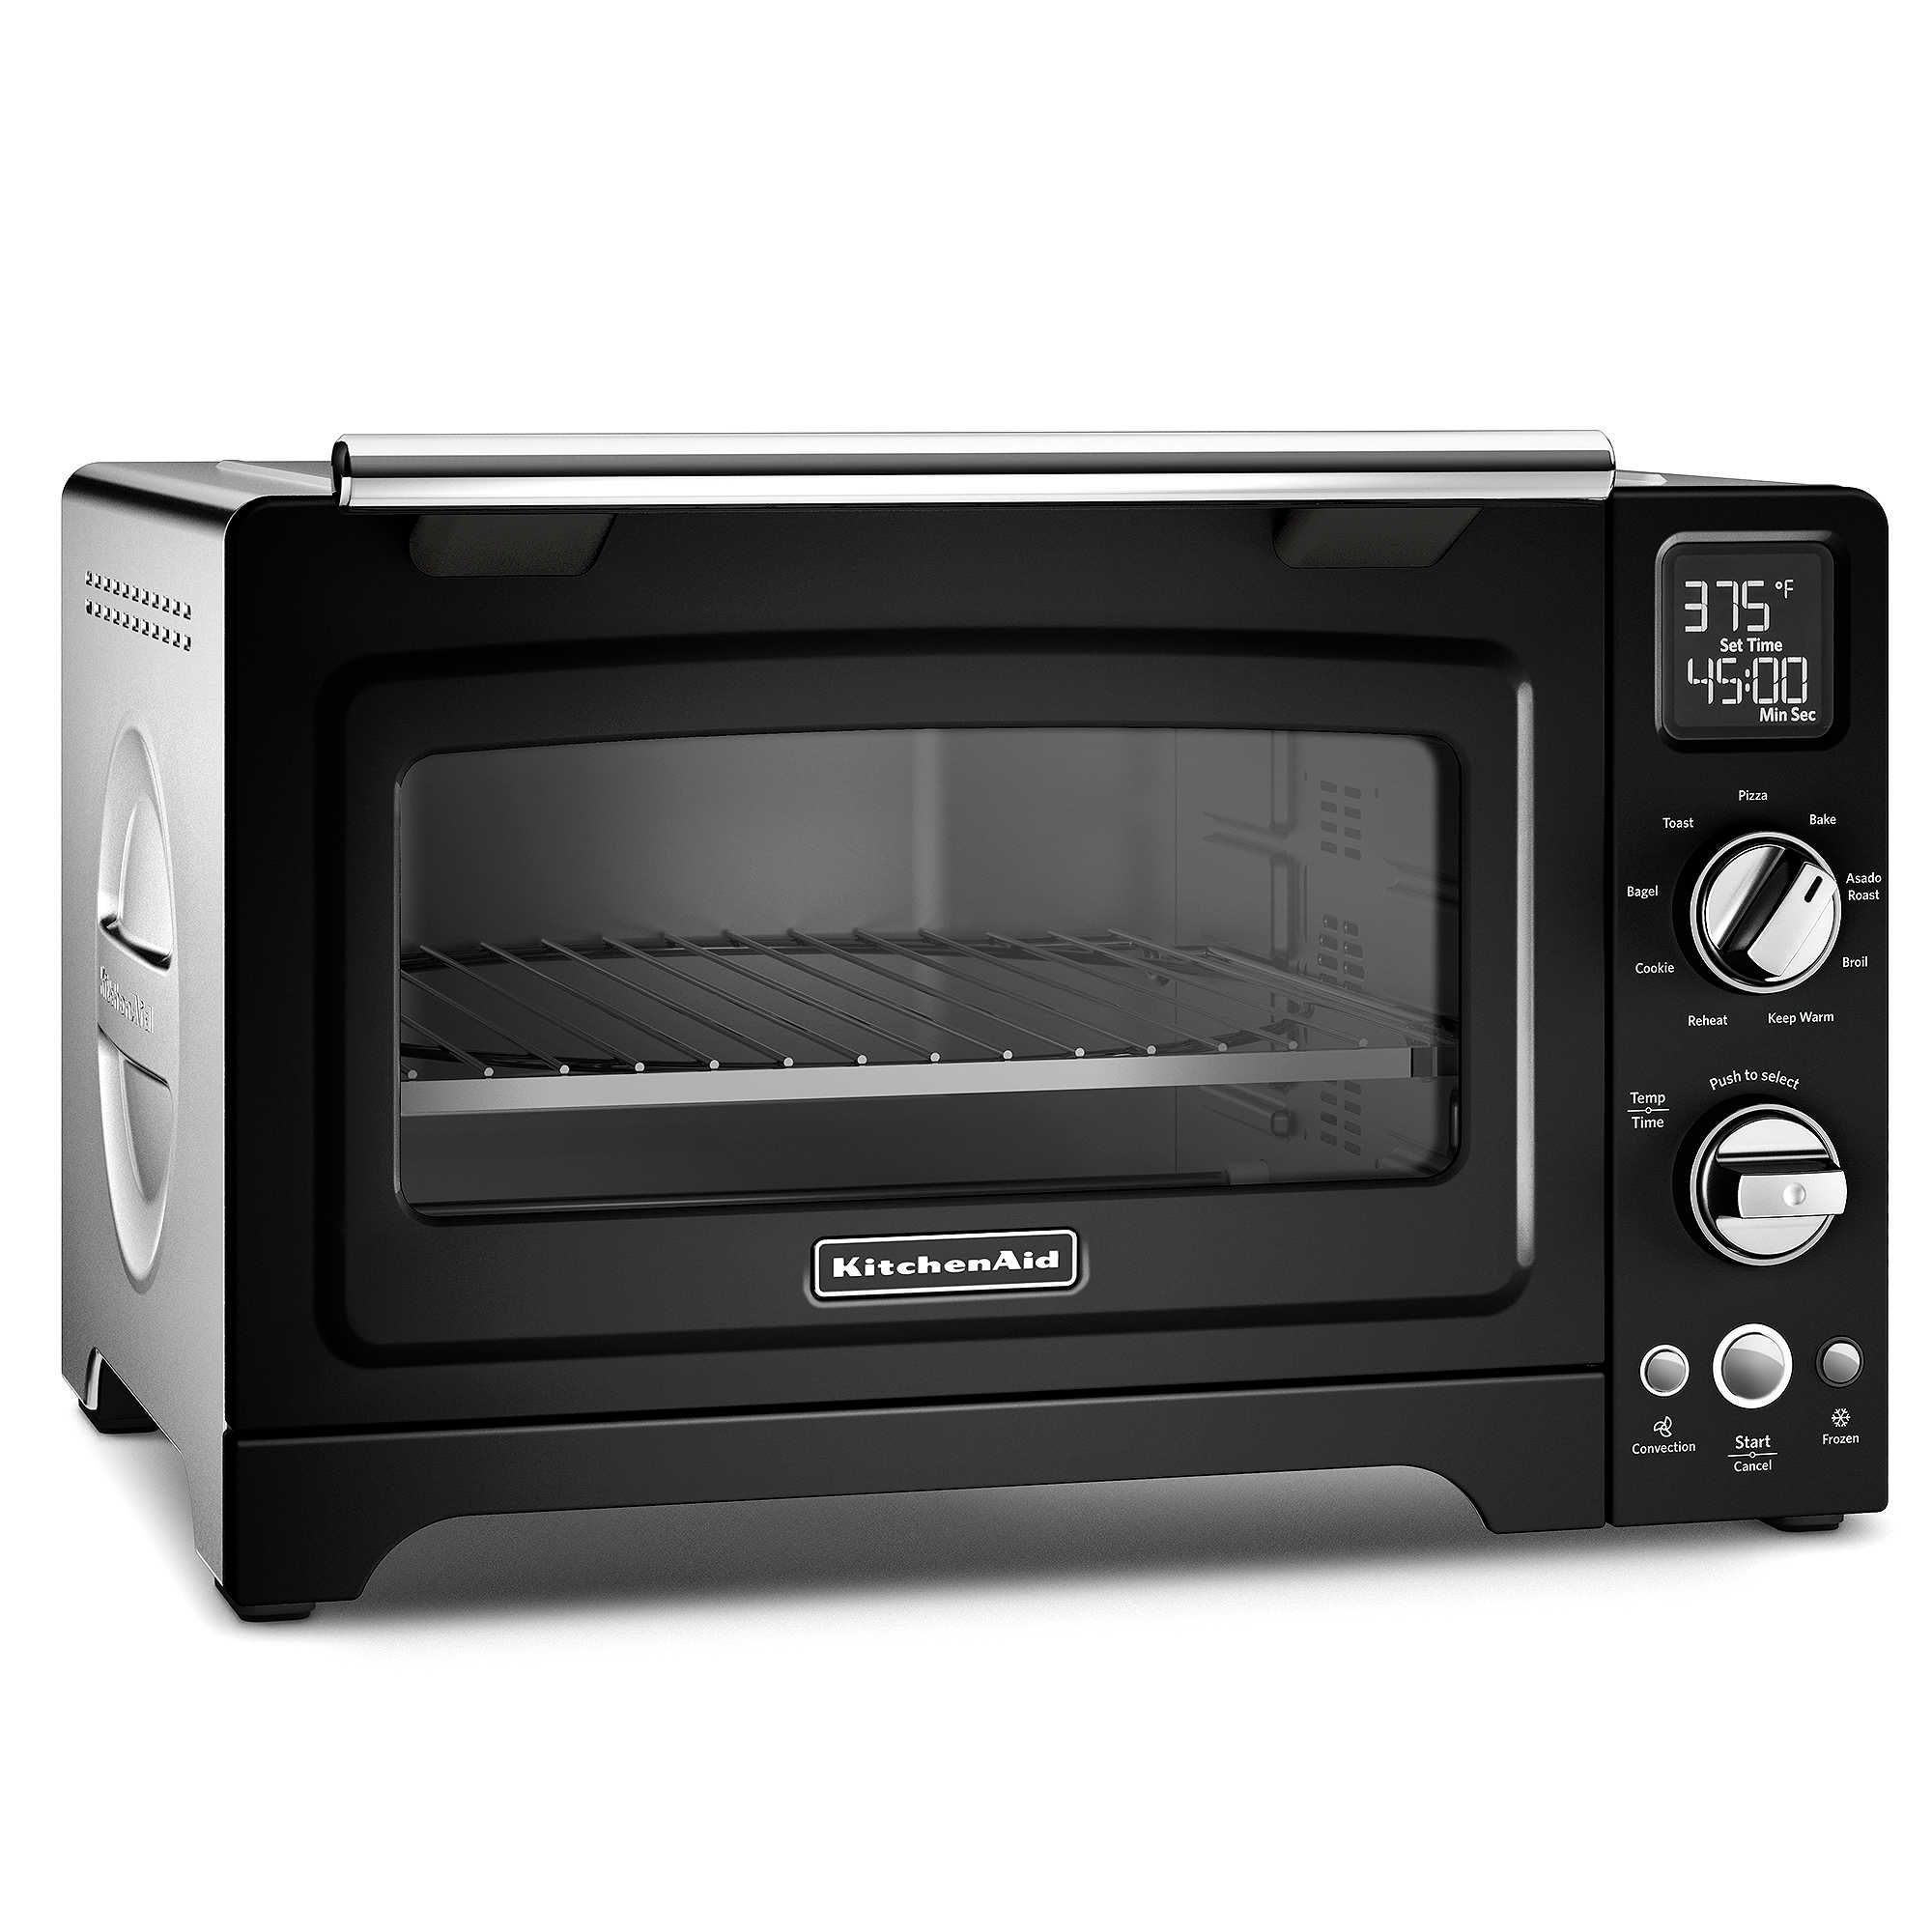 Kitchenaid 174 12 Inch Convection Digital Countertop Oven In